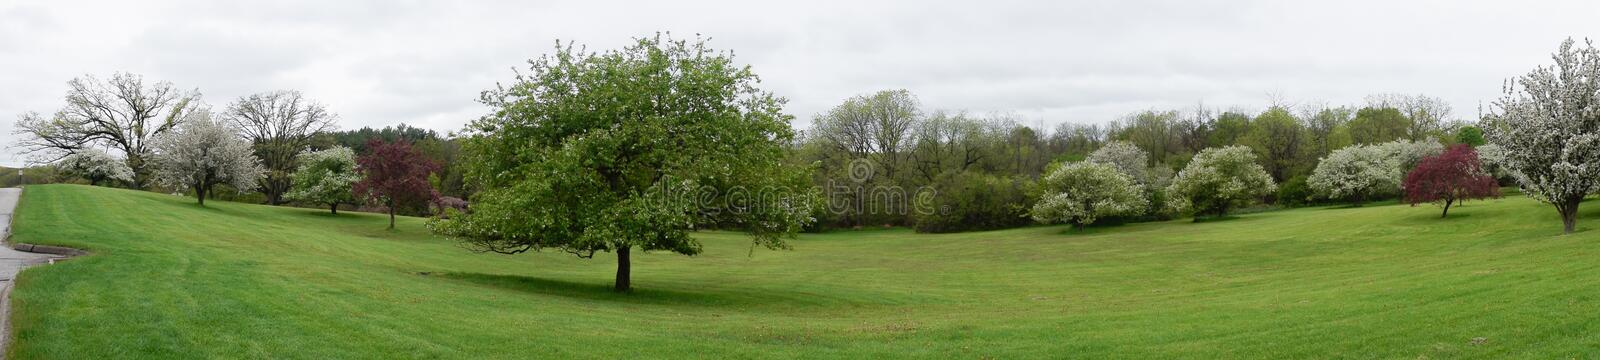 Flowering trees panorama, park in Milwaukee Wisconsin royalty free stock photography